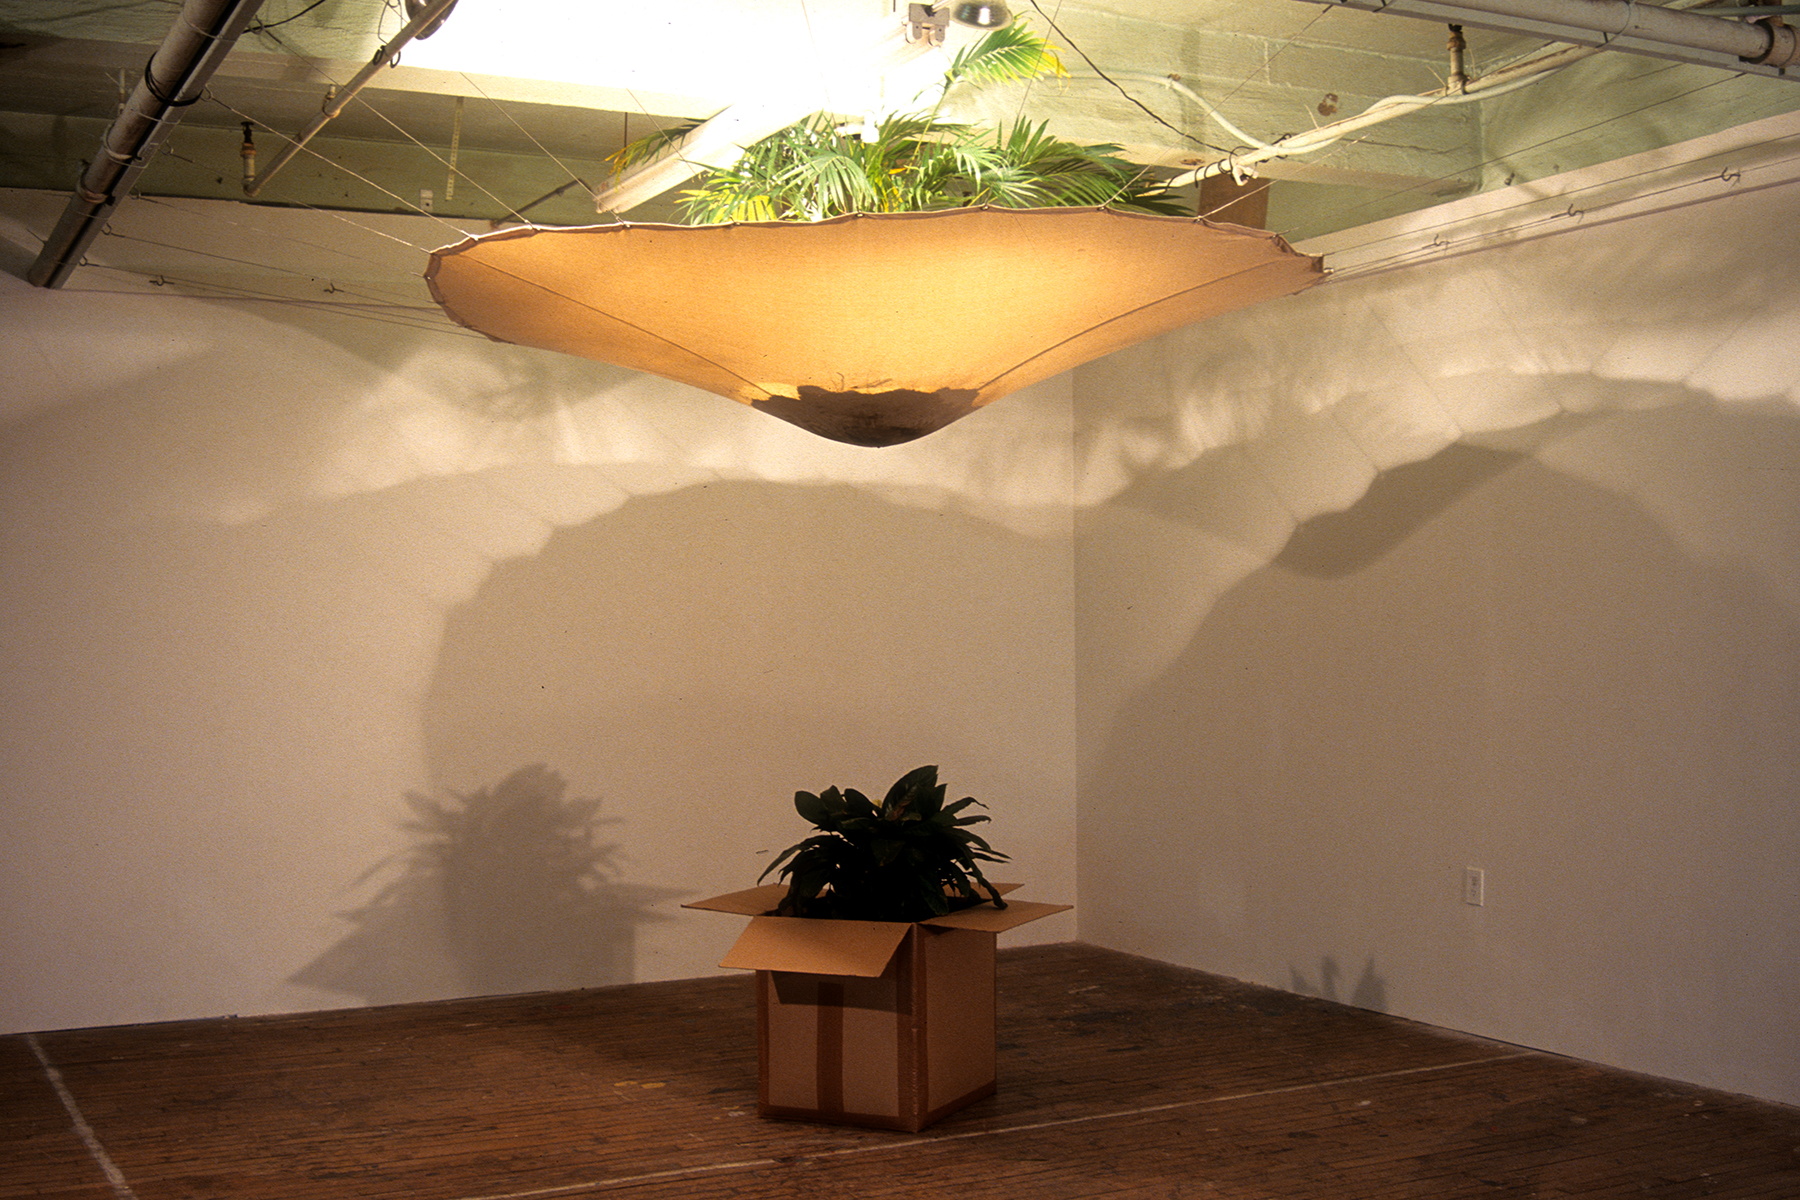 Dregs  / 2006 / Canvas, cardboard, hose, water, soil, houseplants / 12' x 14' x 16' (dimensions of room)